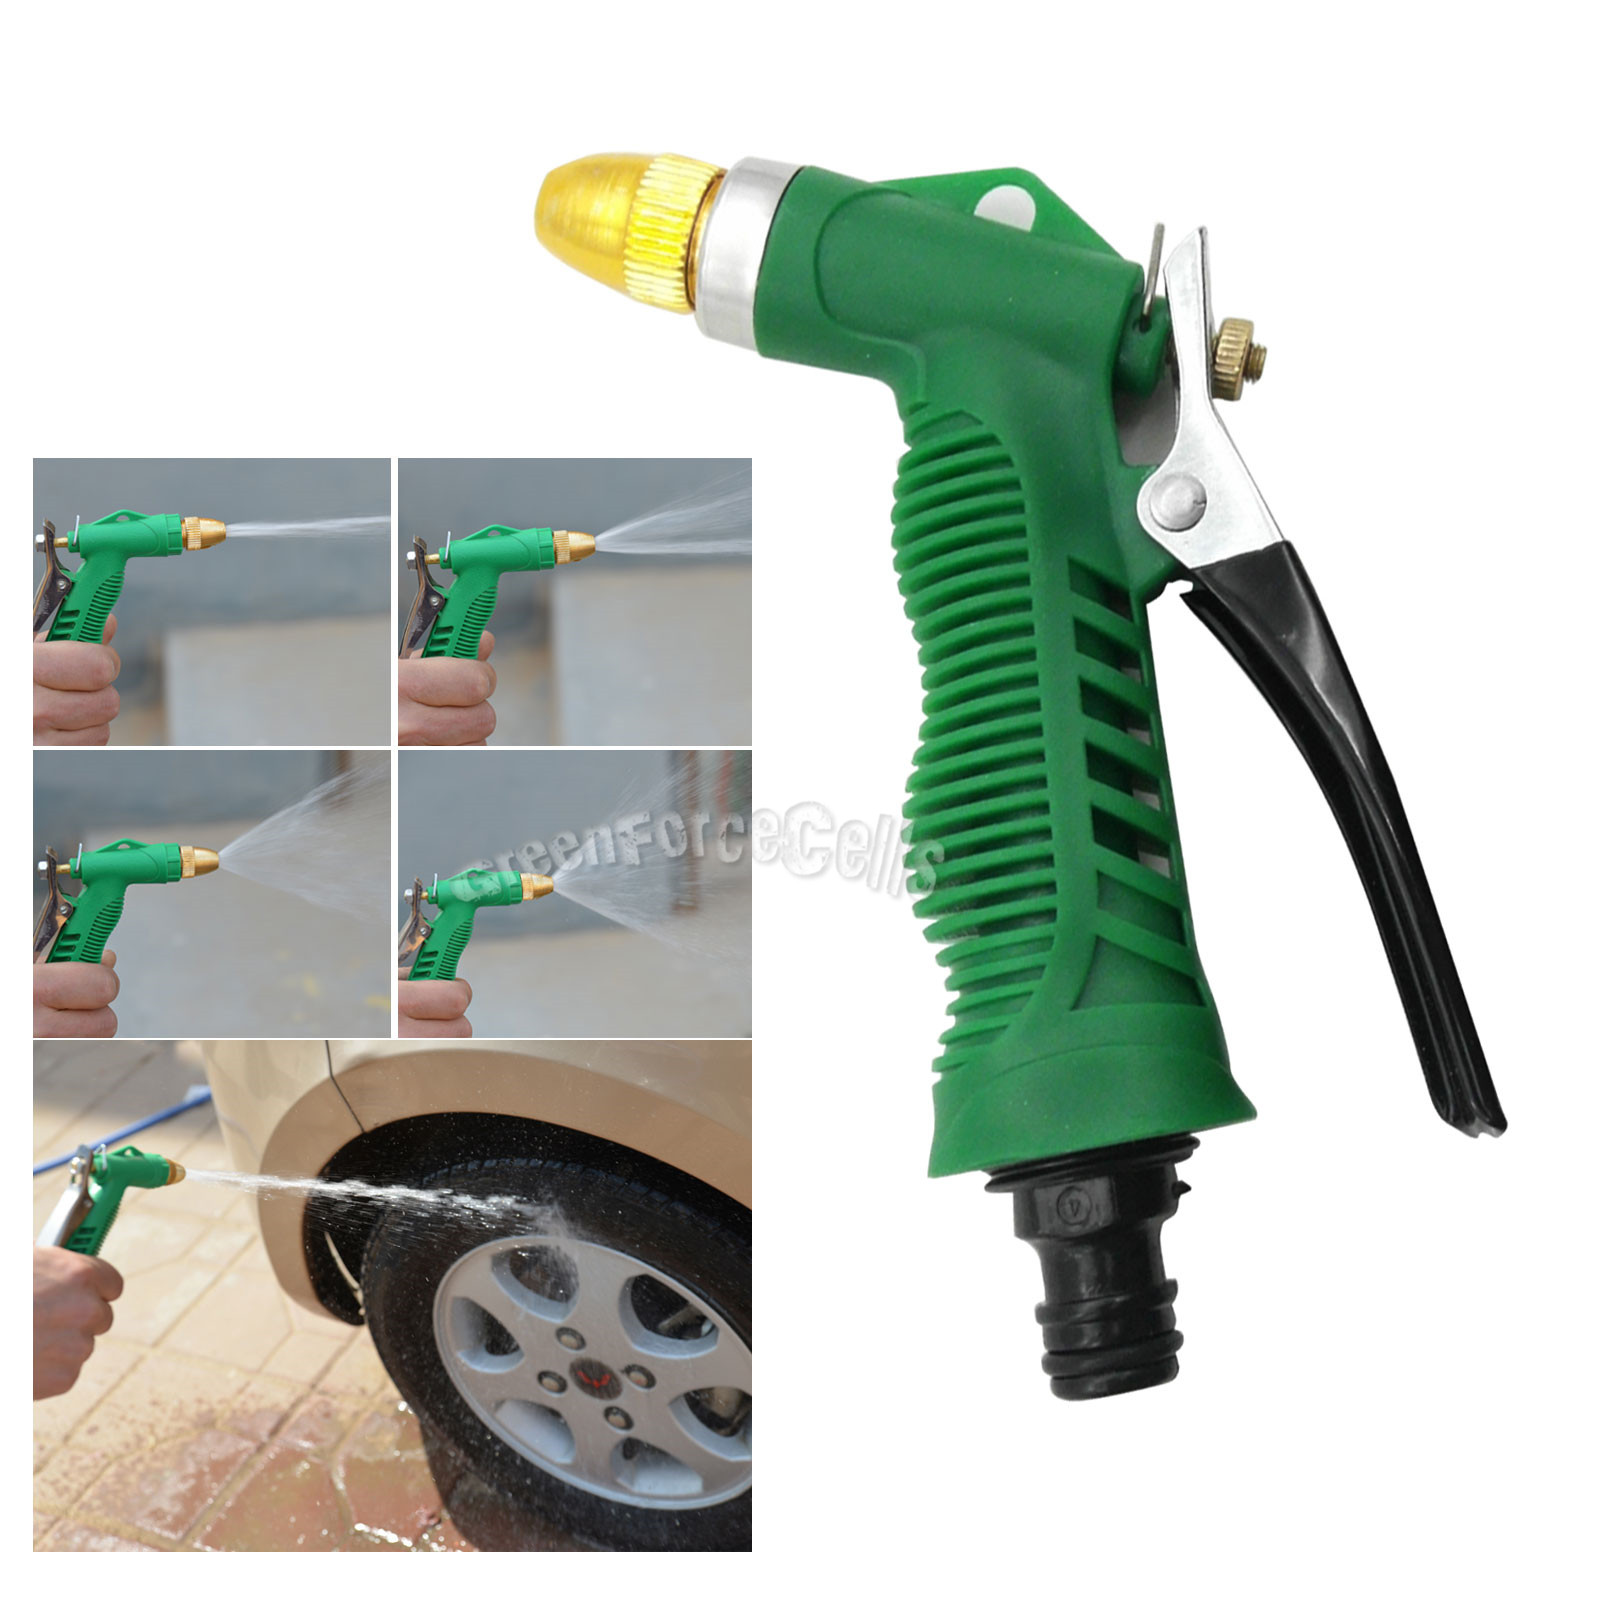 Water hose nozzle trigger wash spray gun for washing